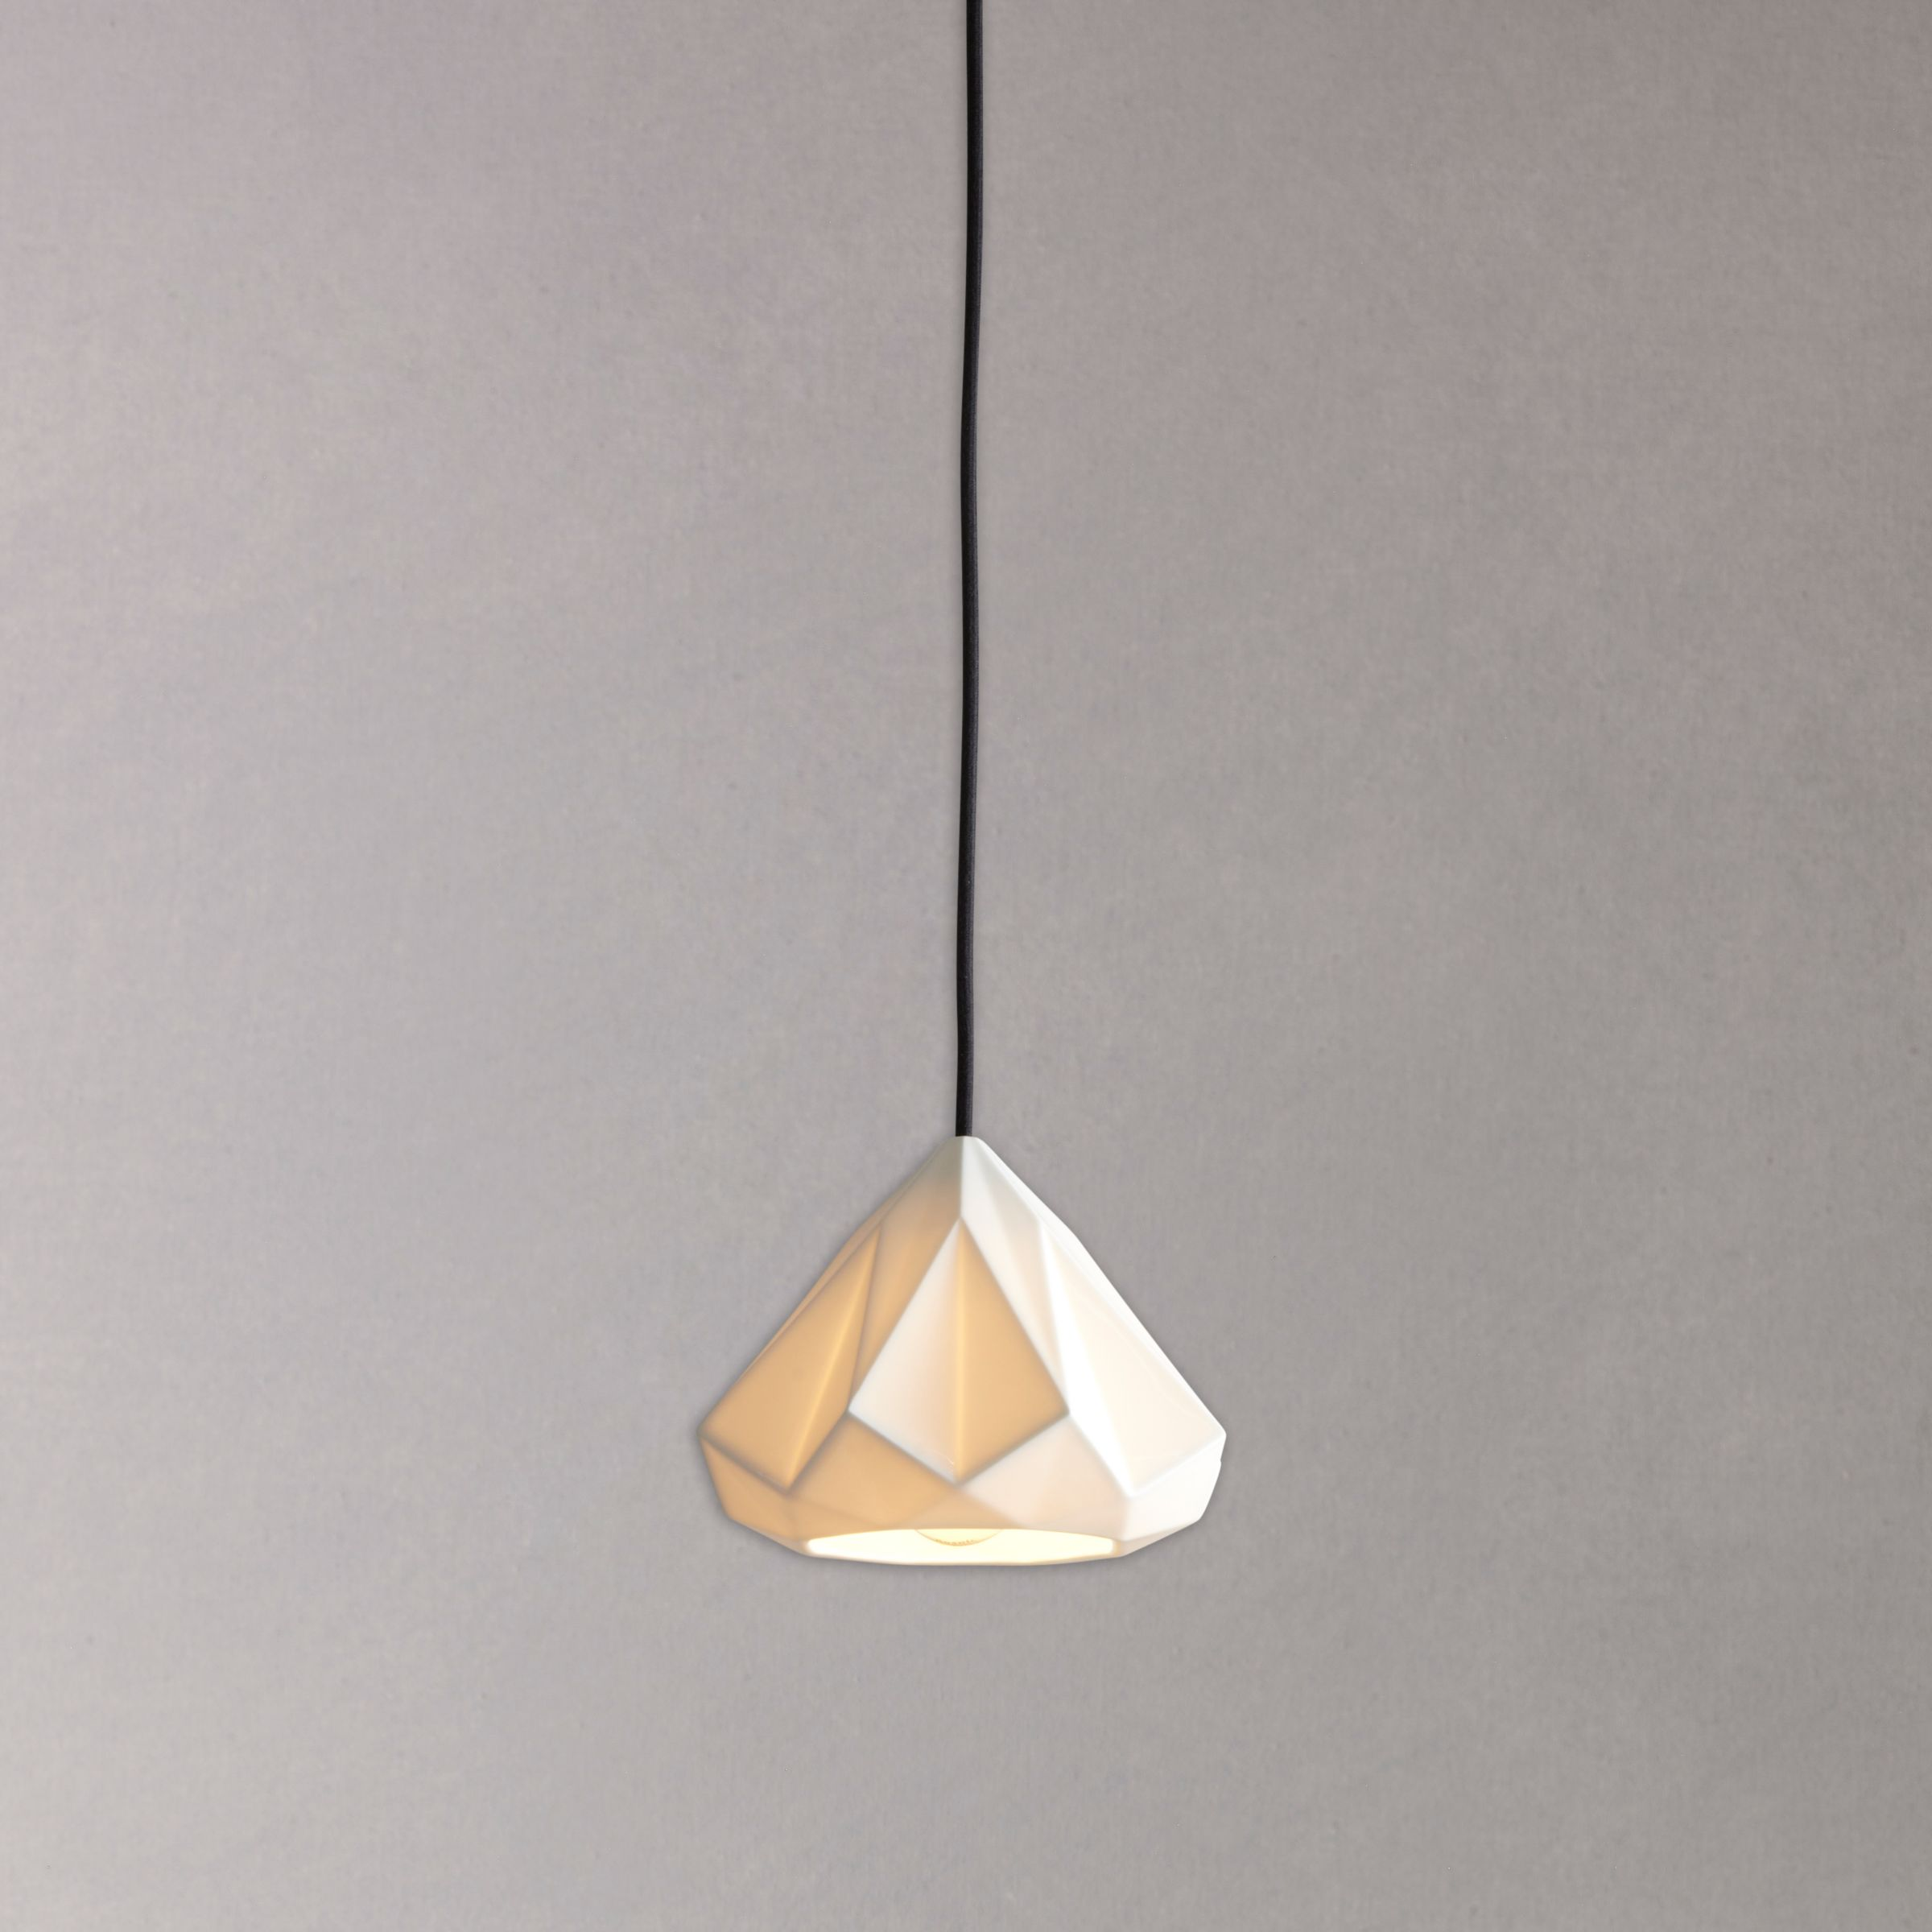 Original BTC Original BTC Hatton 1 Small Pendant Light, 21cm